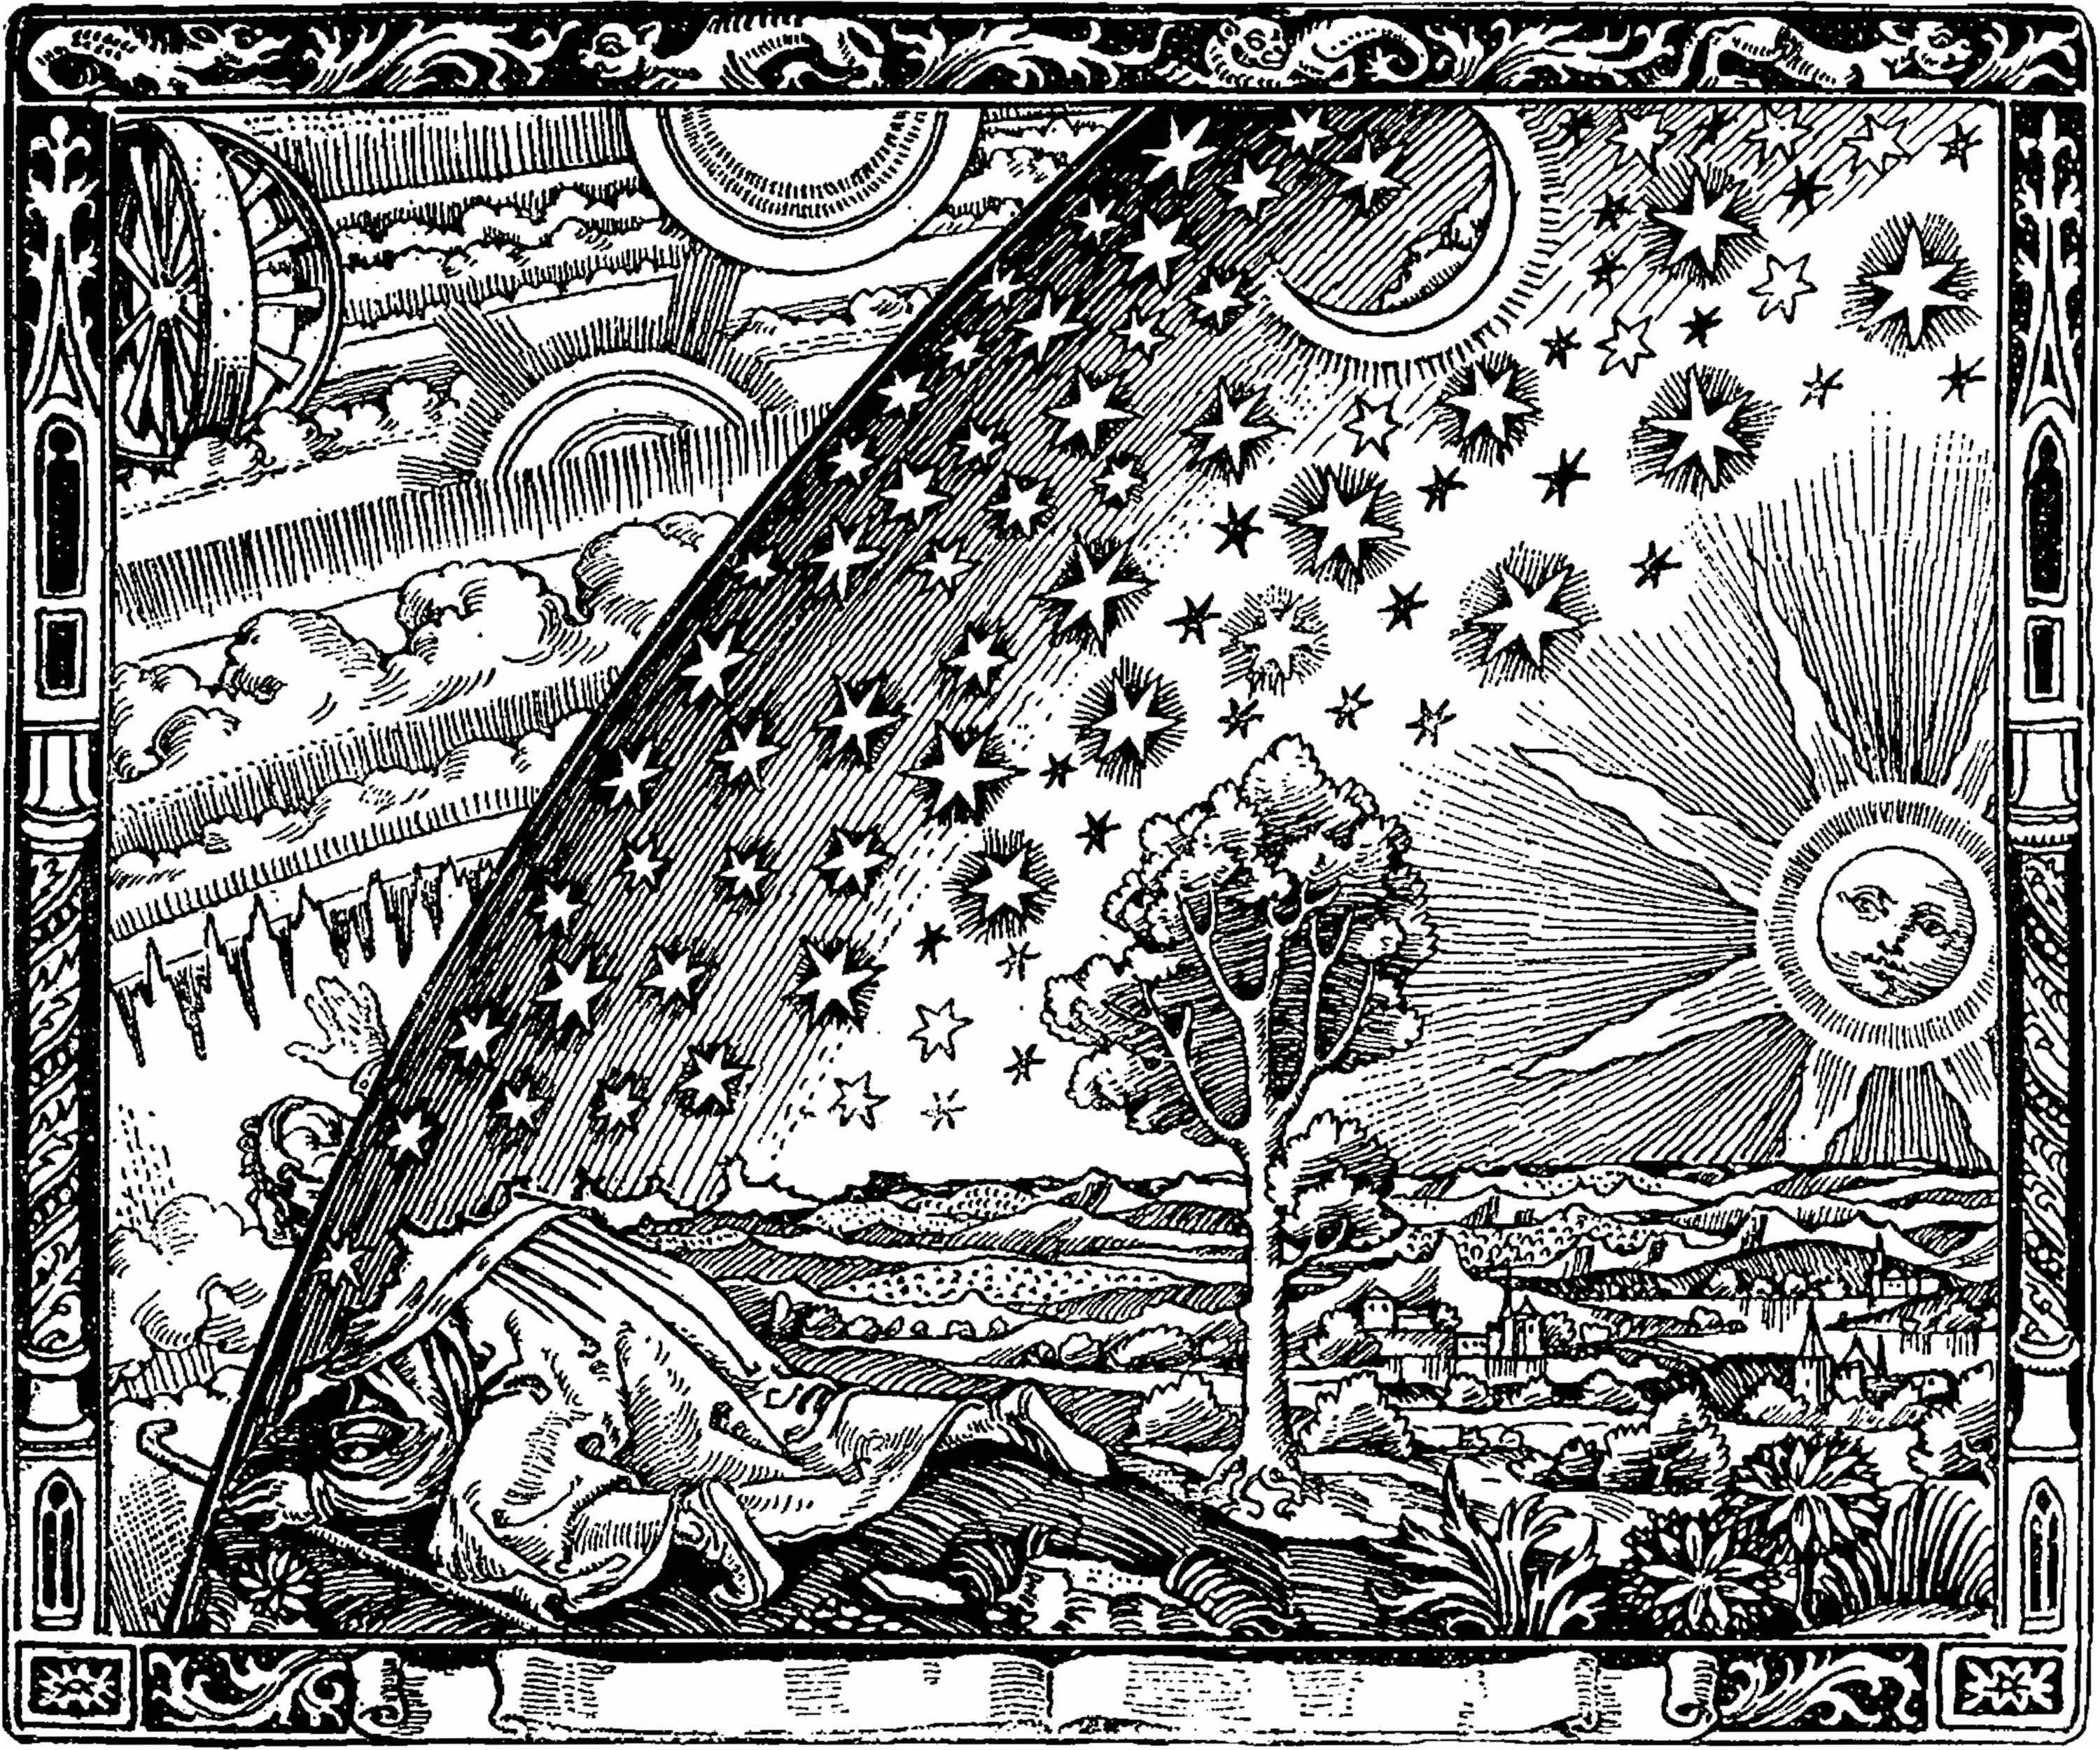 Flammarion Camille Making Science Popular